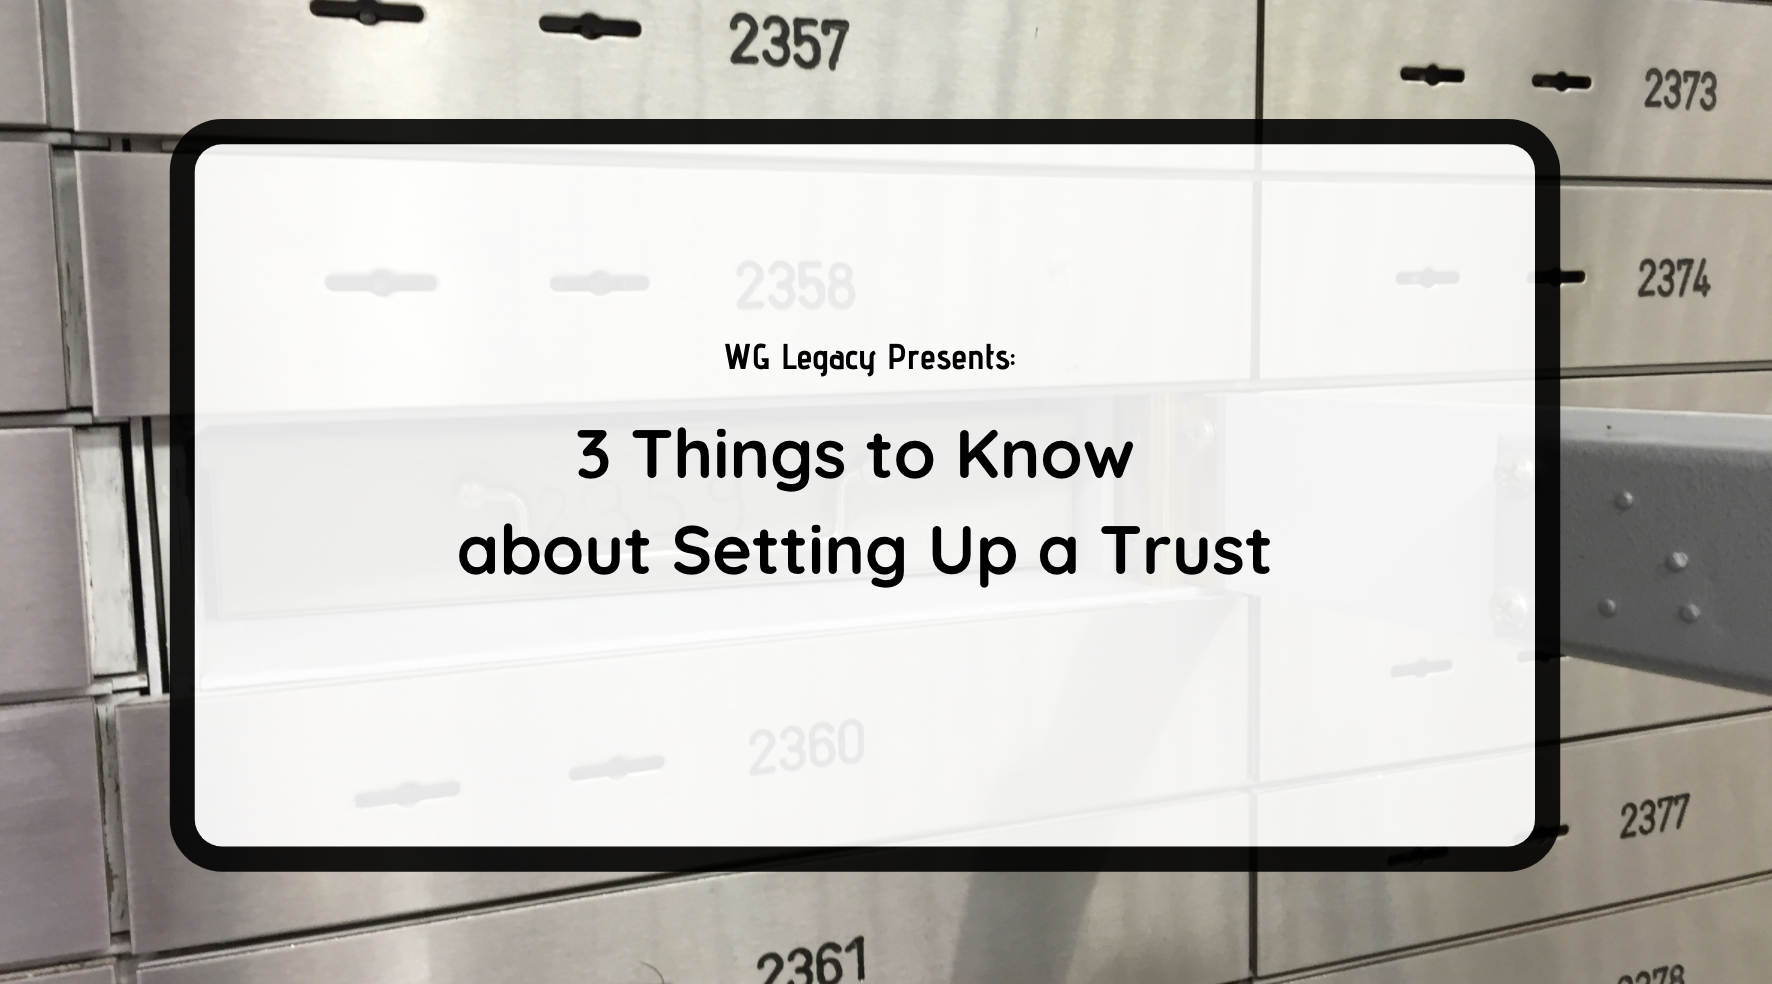 3 Things to Know about Setting Up a Trust